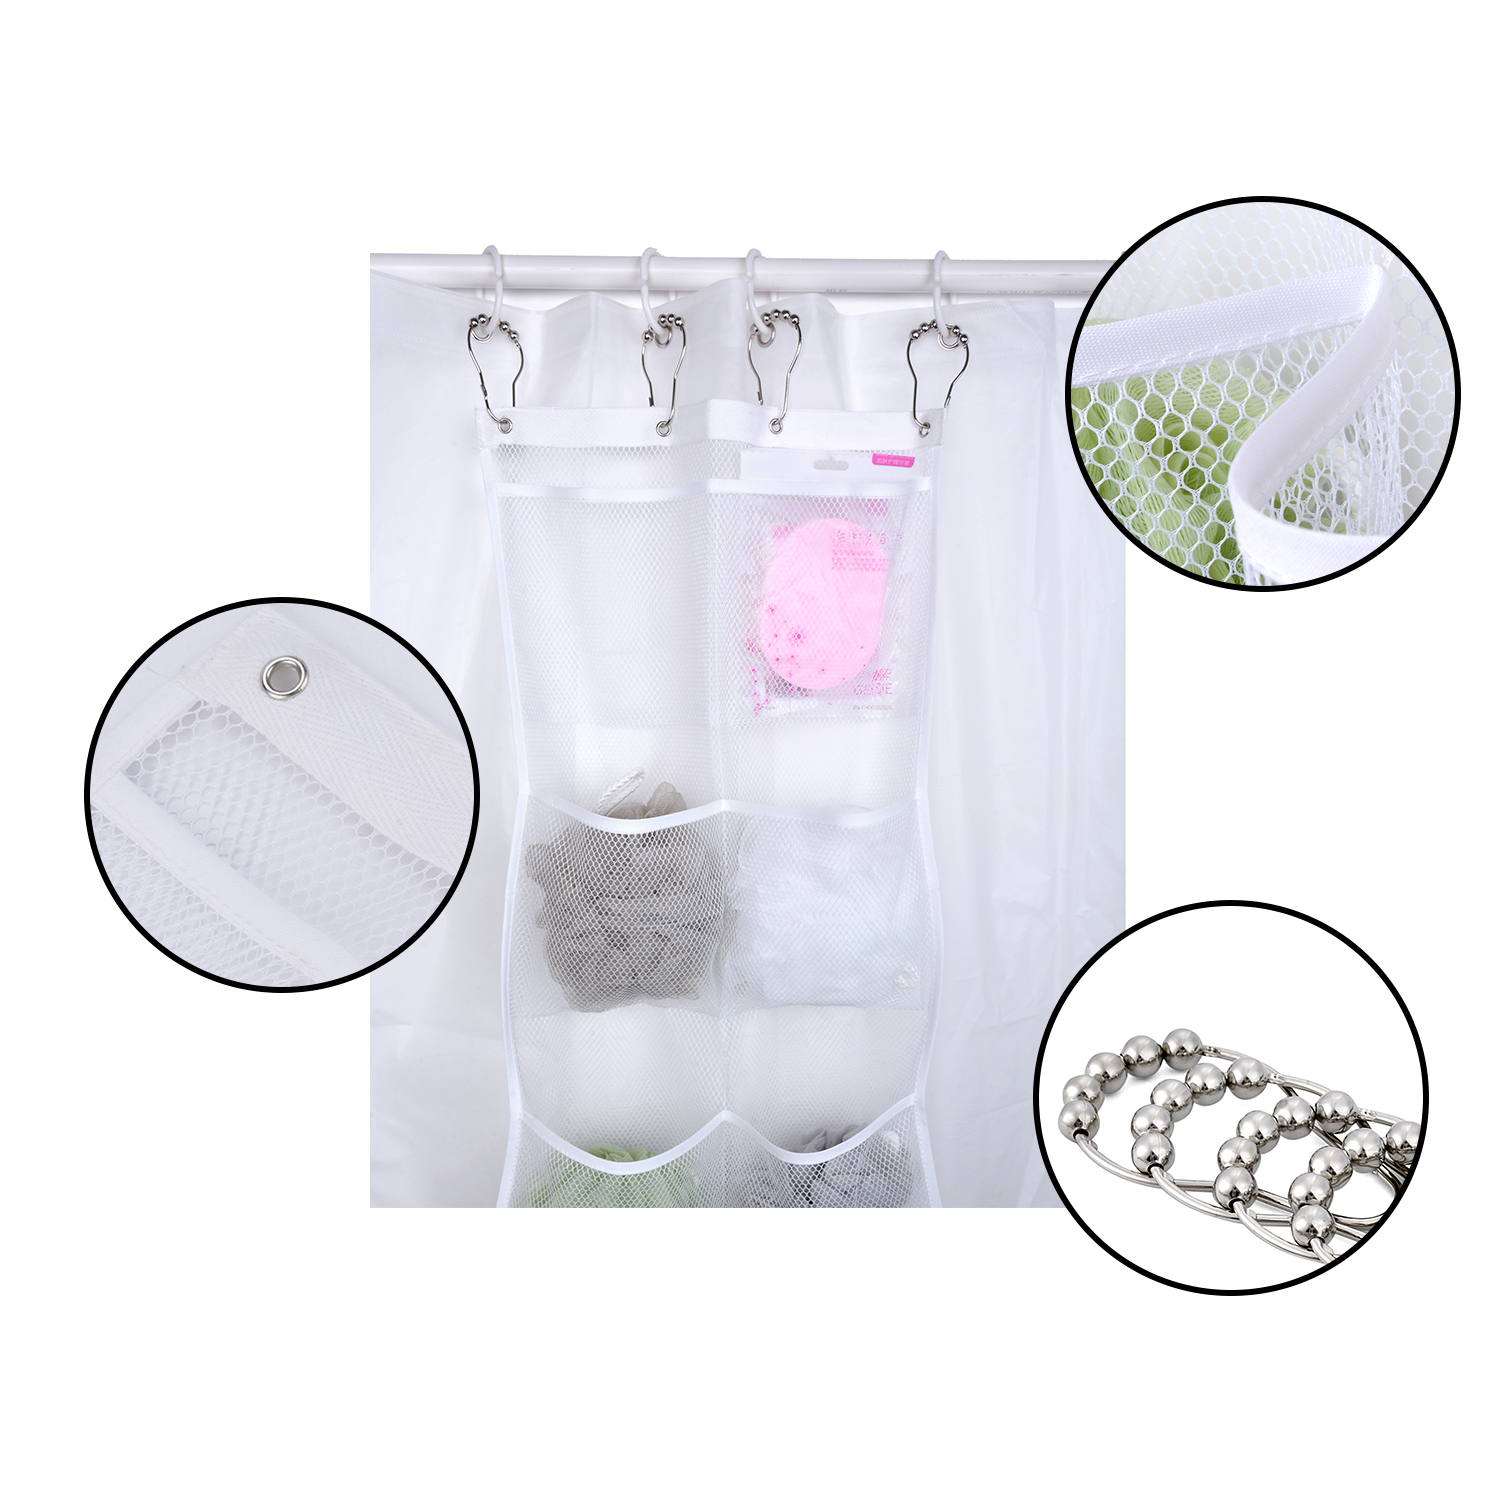 Shower Caddy, Coxeer Quick Dry Hanging Mesh Bath Organizer with 6 Pockets & 4 Hooks for... by Outgeek